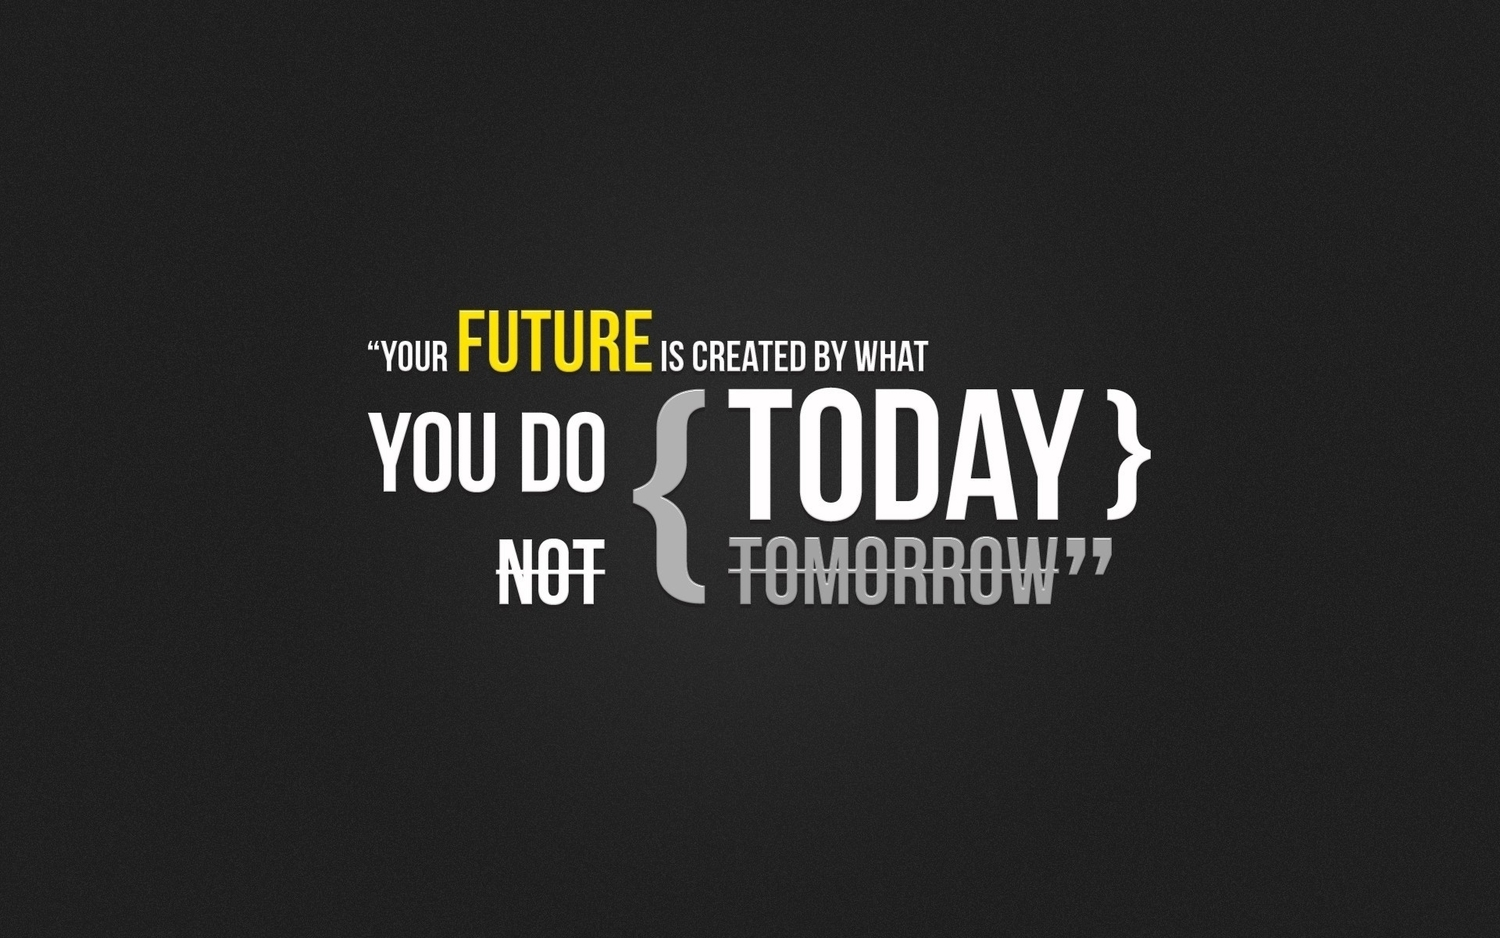 your-future-is-created-by-what-you-do